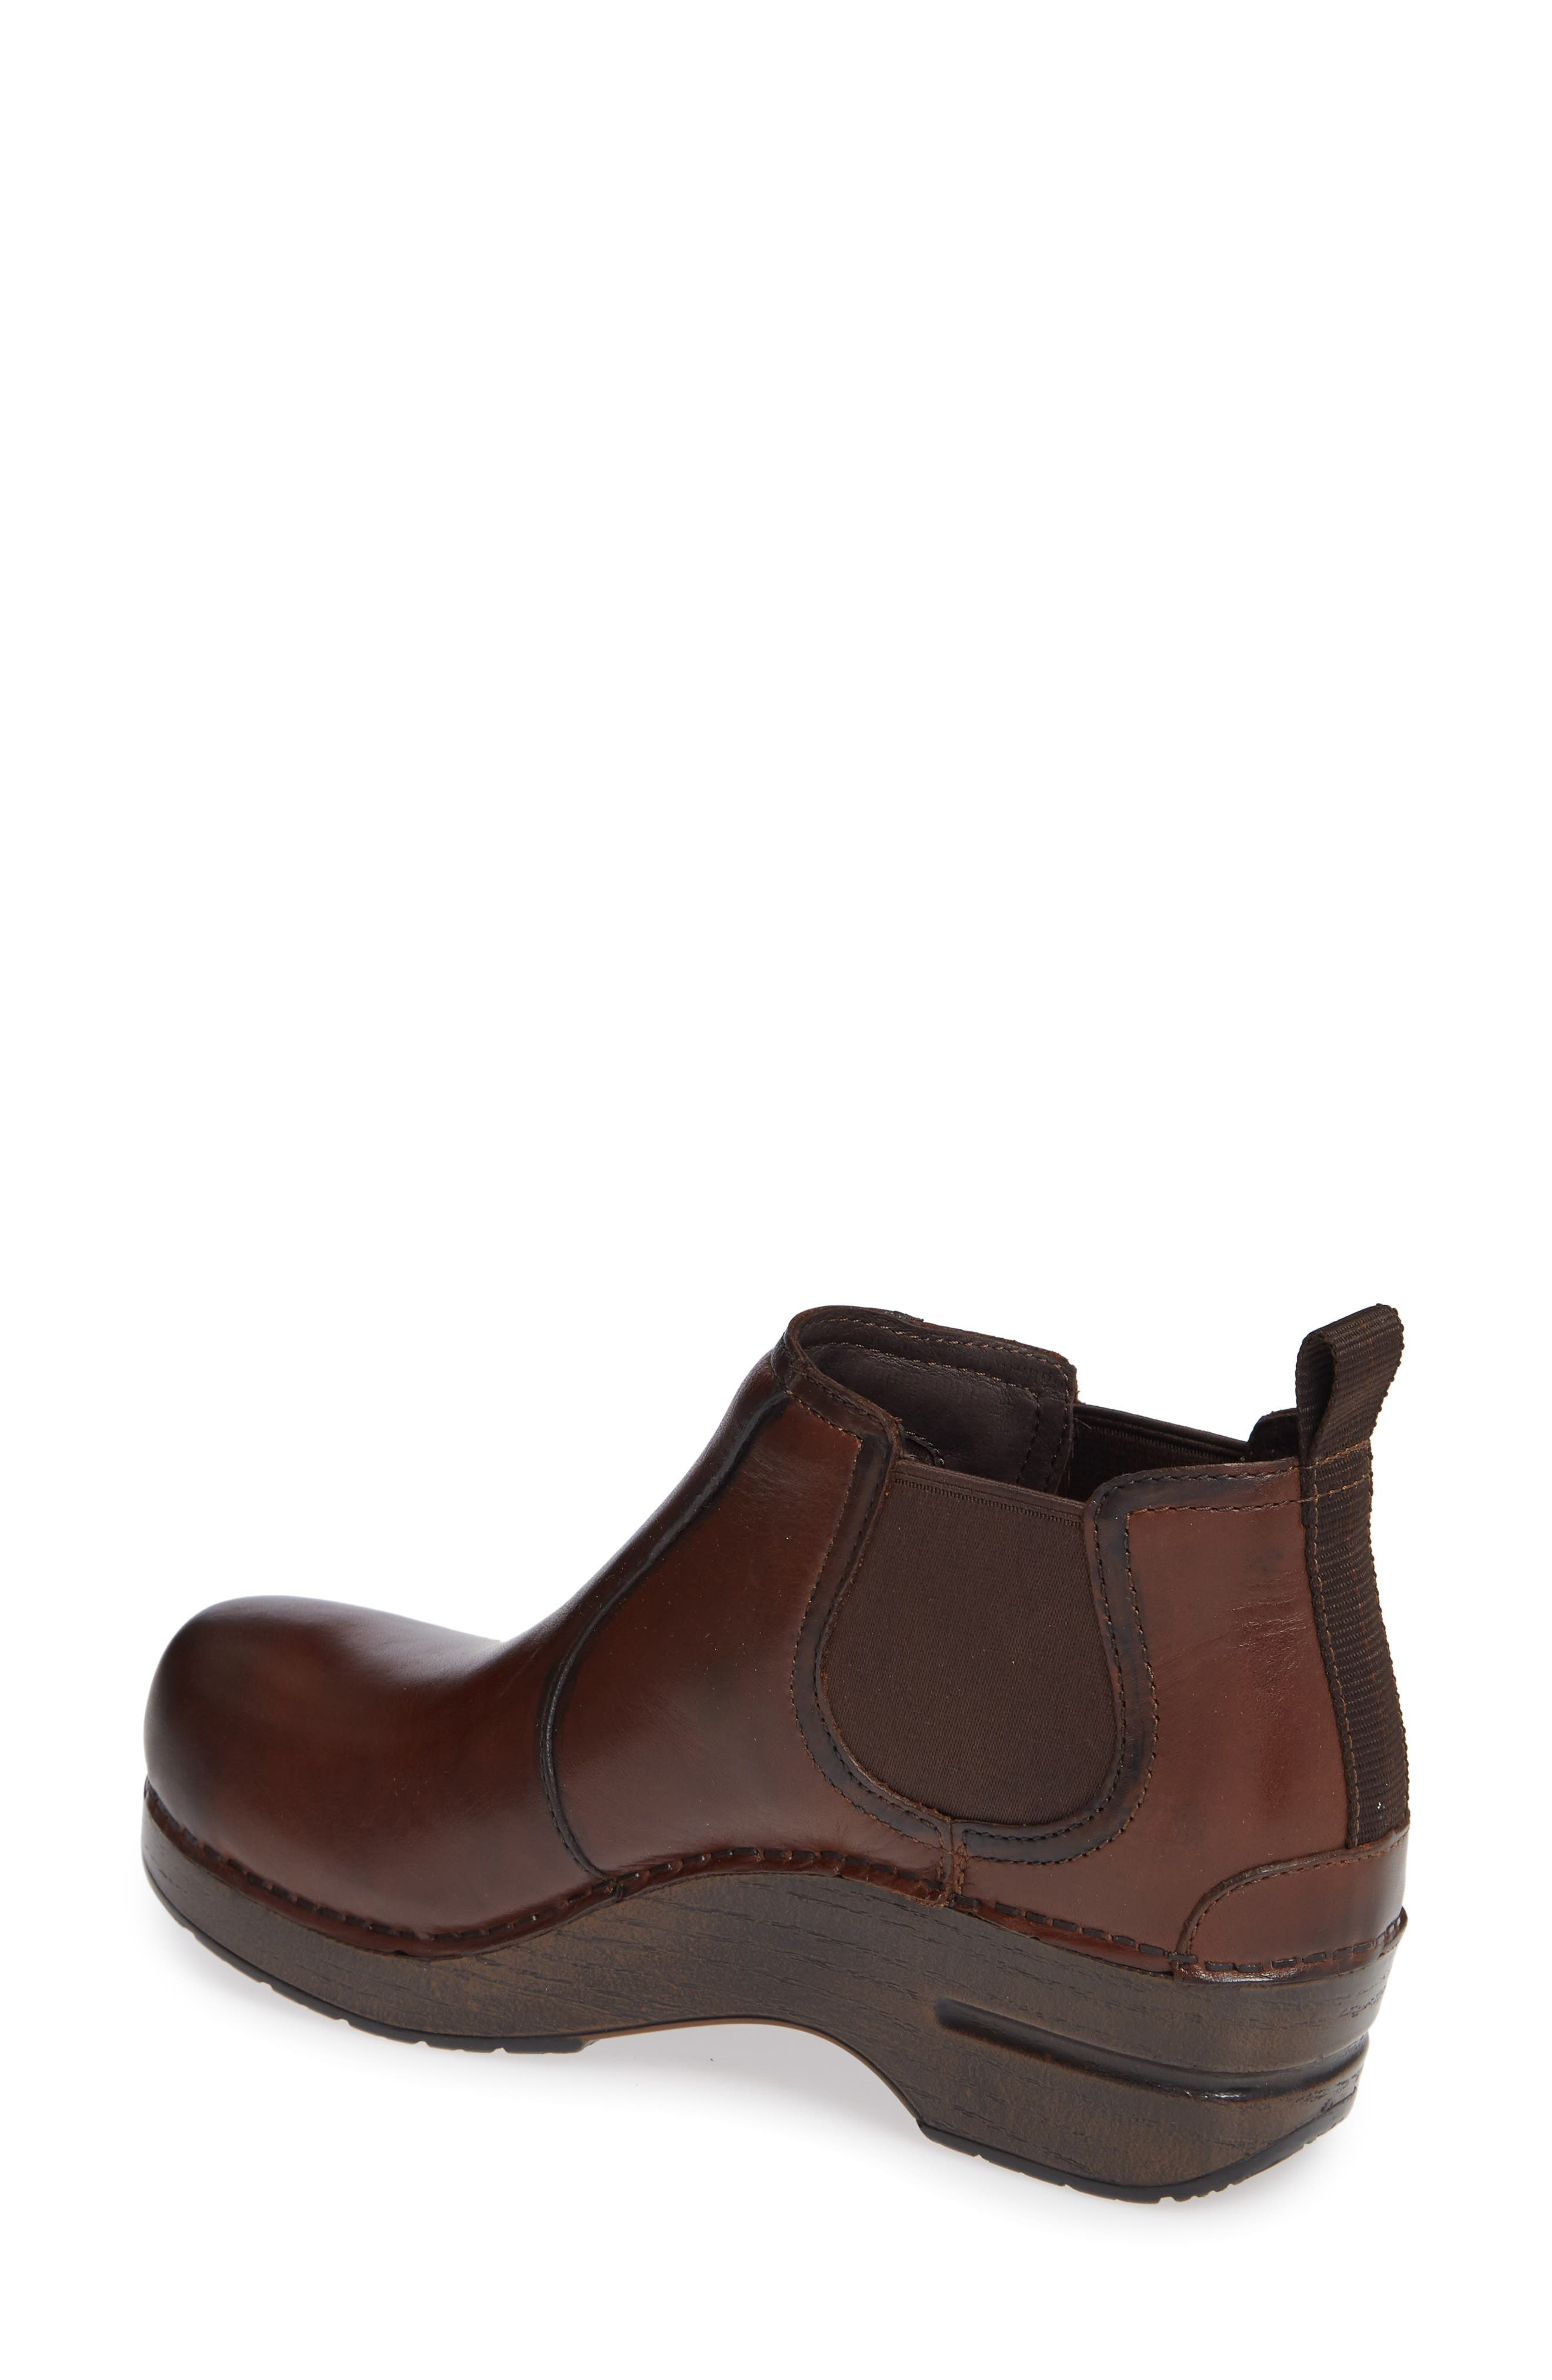 Frankie Bootie,                             Alternate thumbnail 2, color,                             BROWN LEATHER